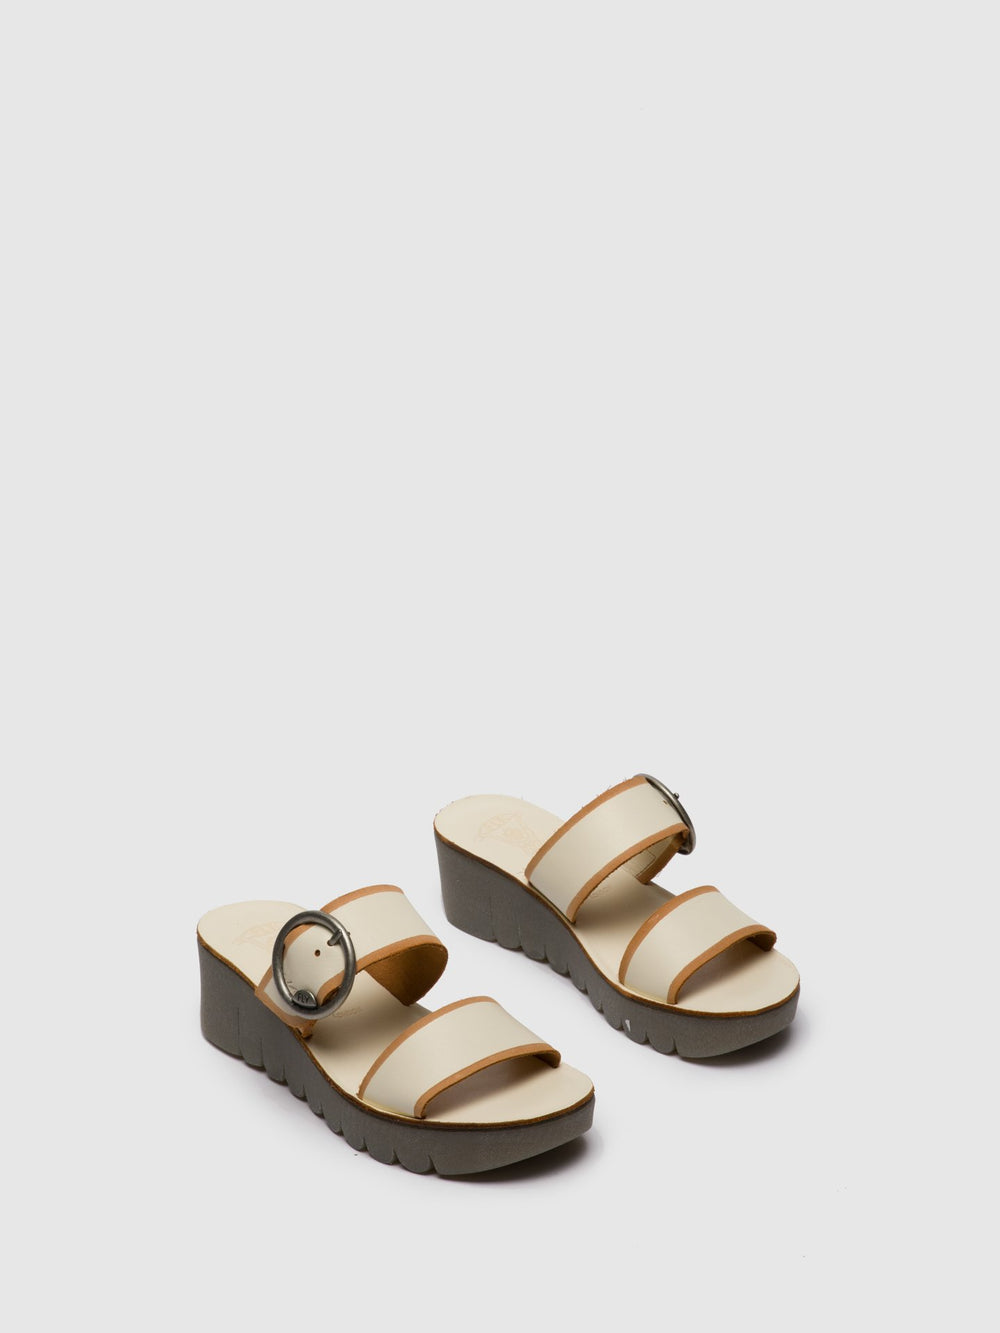 Strappy Mules YUNO601FLY CREAM/BEIGE